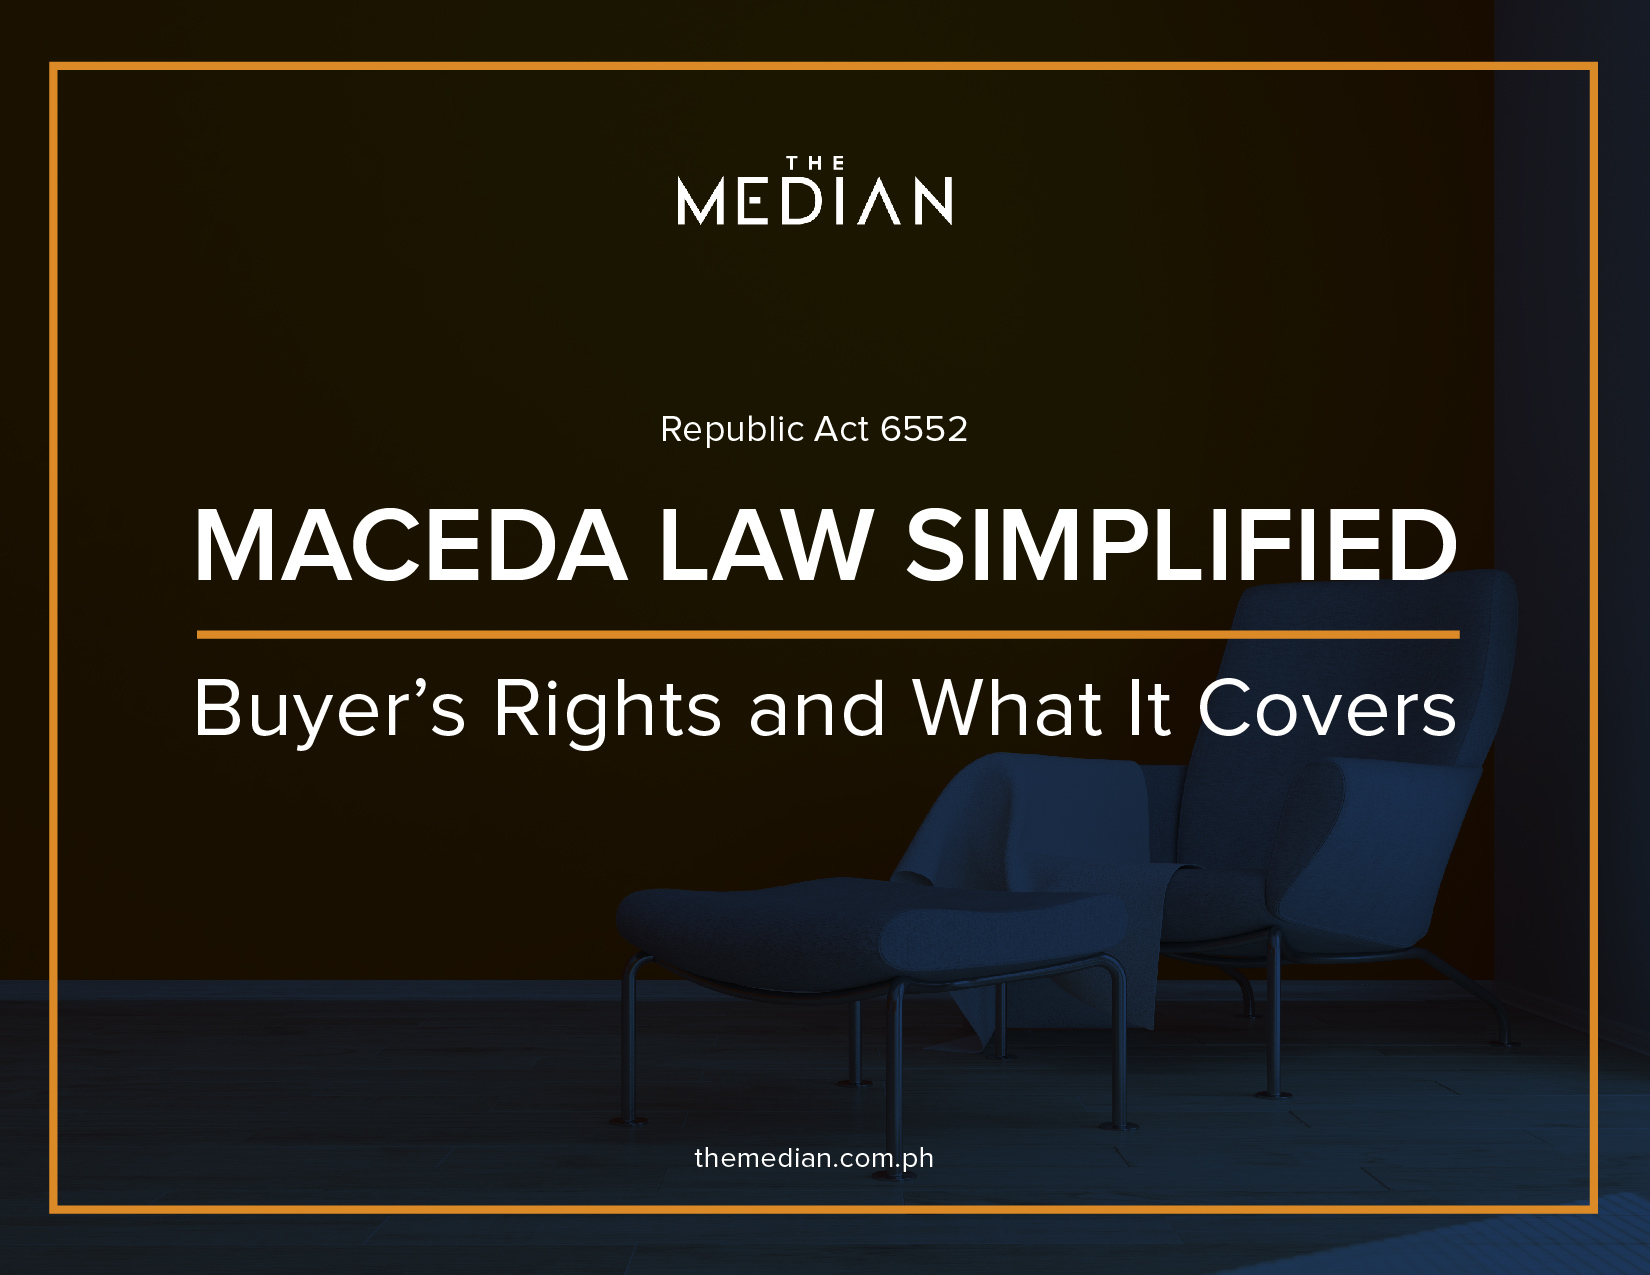 MACEDA LAW SIMPLIFIED: Buyer's Rights and What It Covers